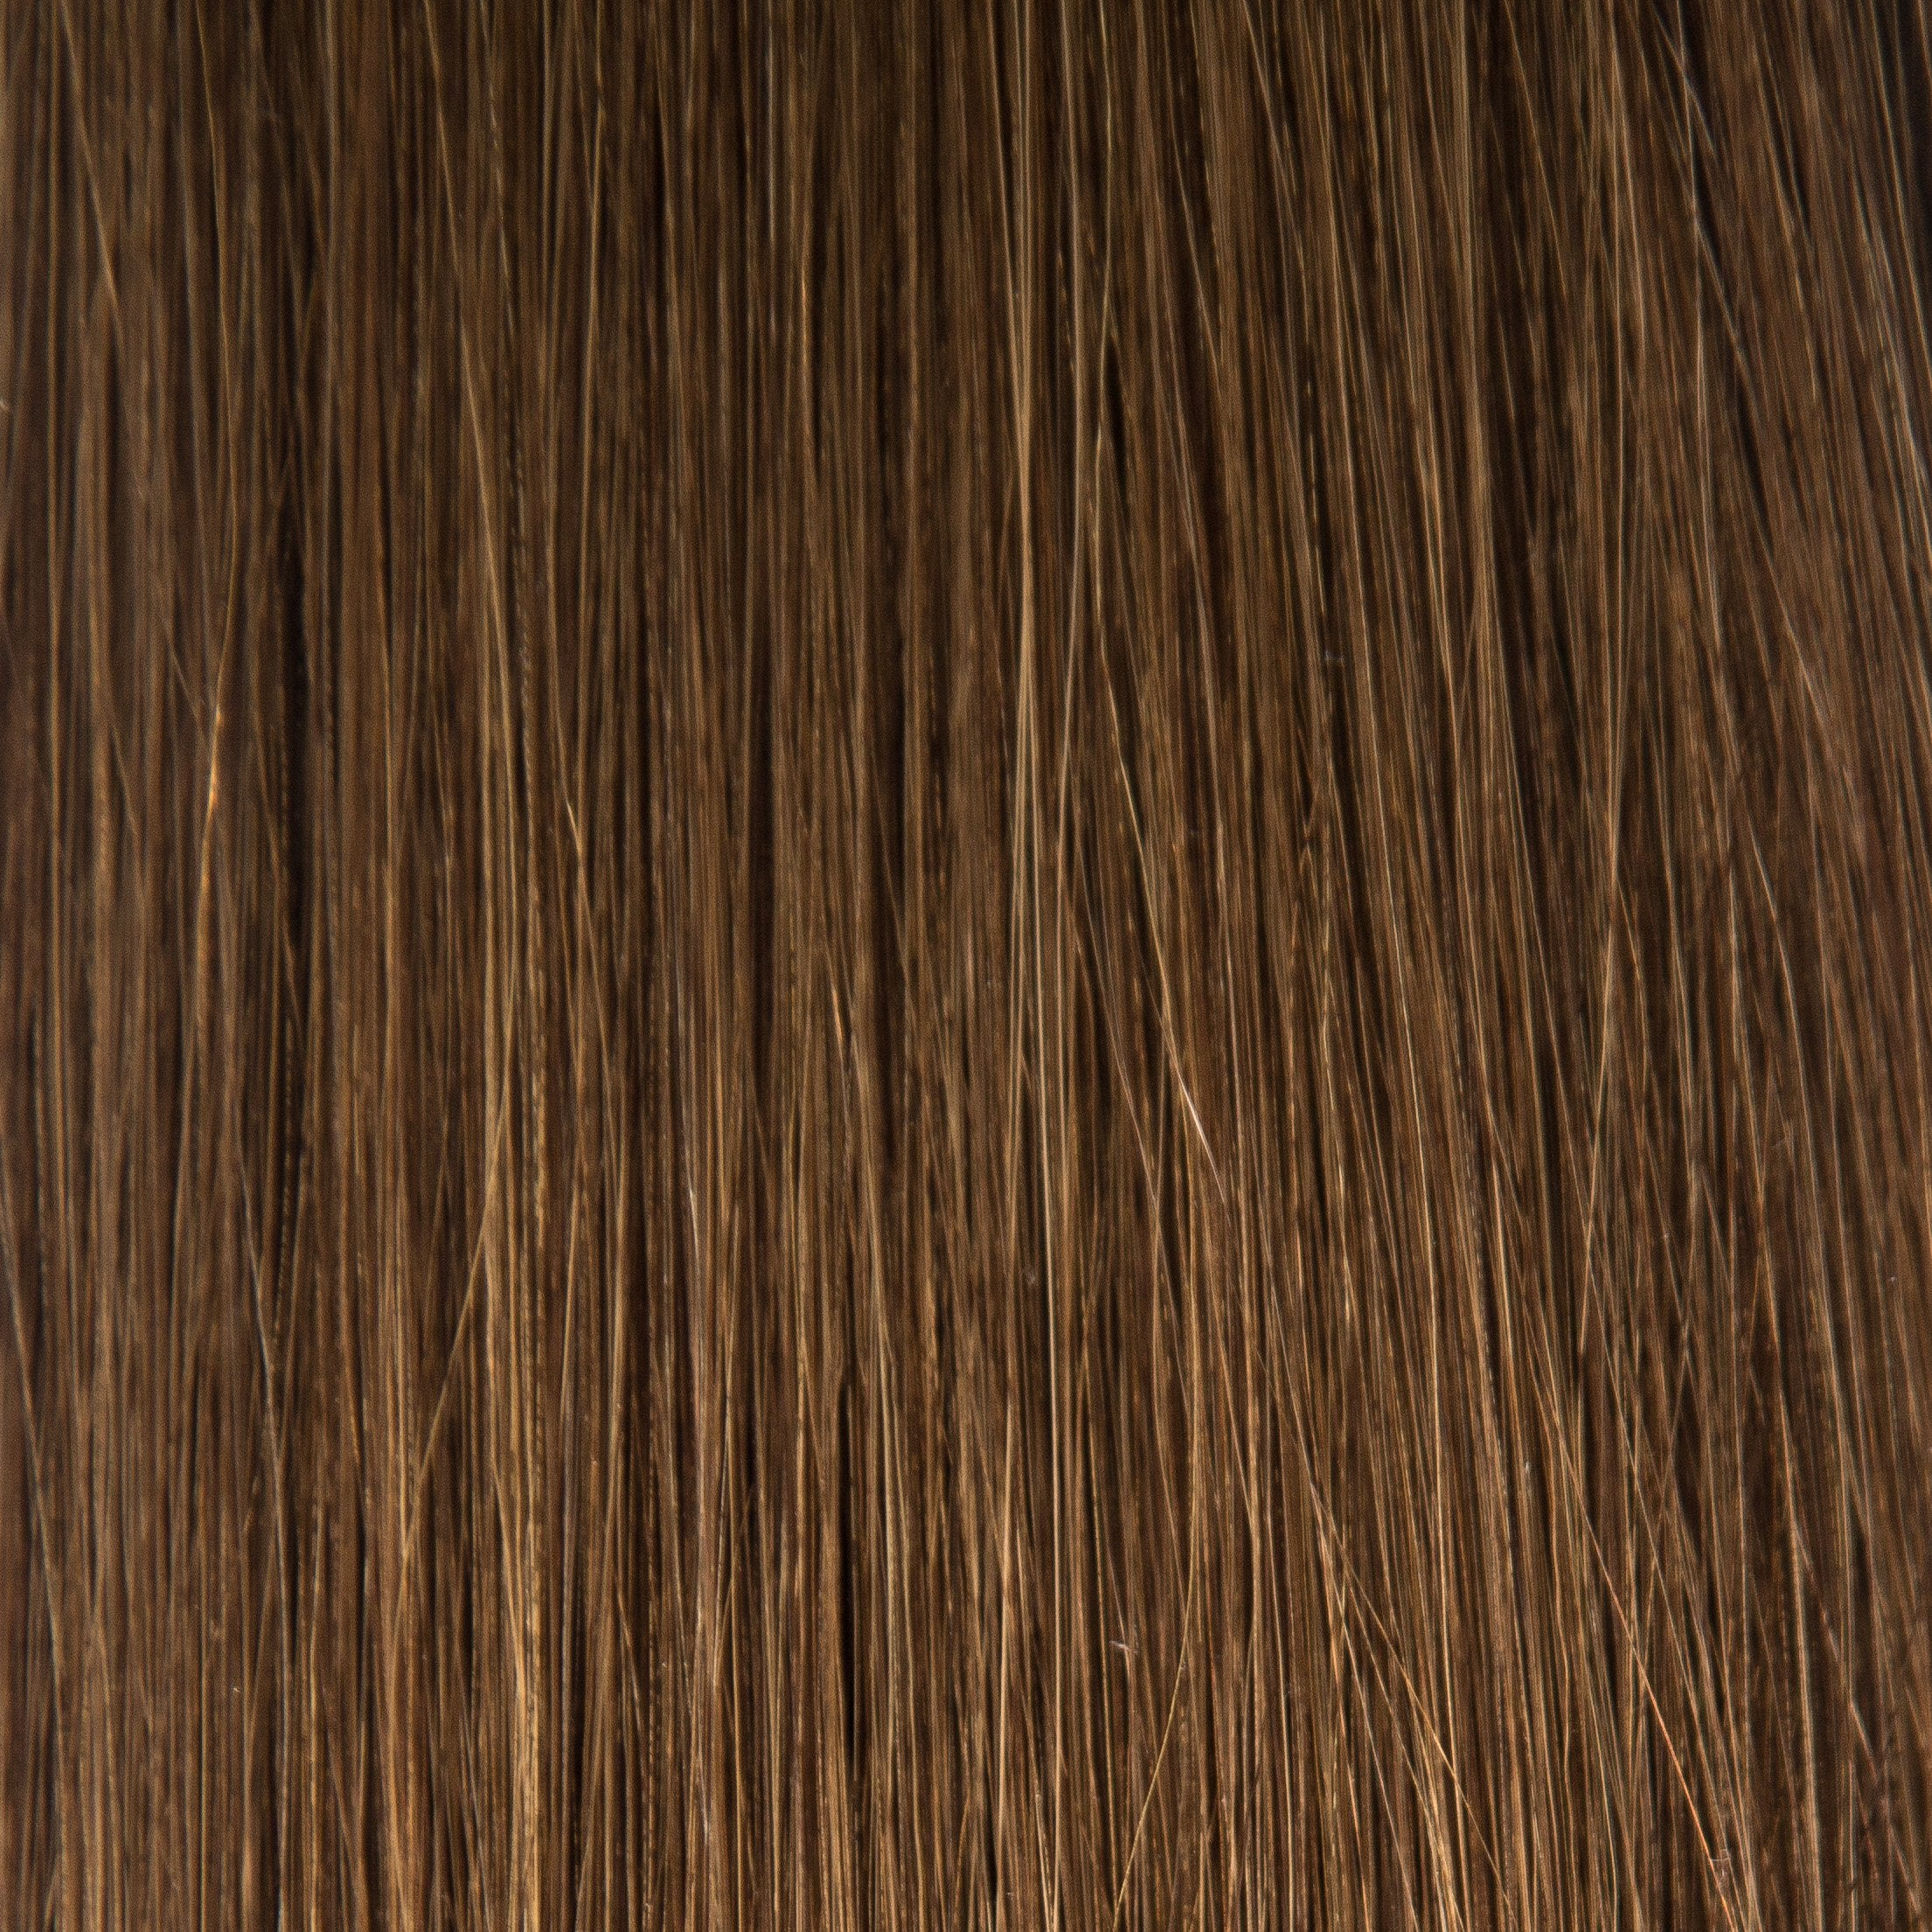 Laced Hair Machine Sewn Weft Extensions #4